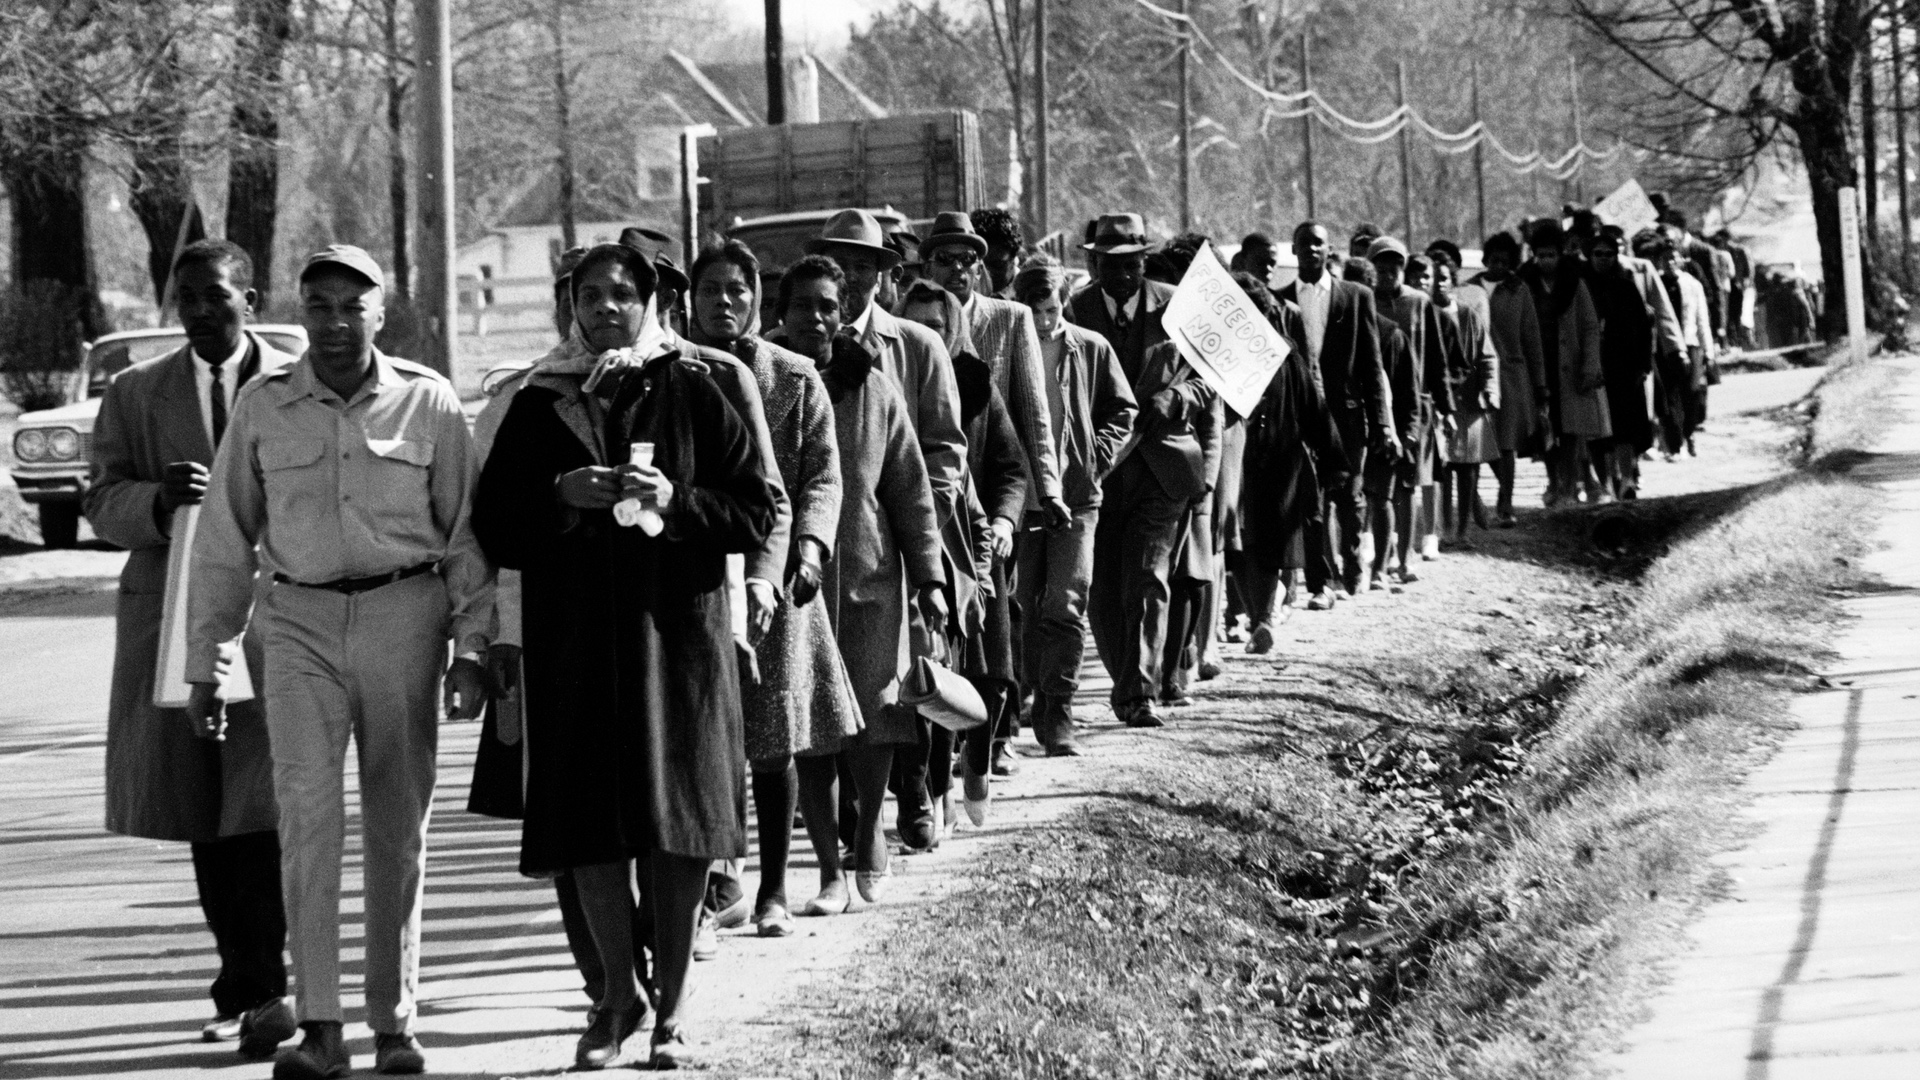 John and Viola McFerren leading protestors to Fayette County, Tennessee Courthouse, March 1965. Photographer: Art Shay, Life Magazine